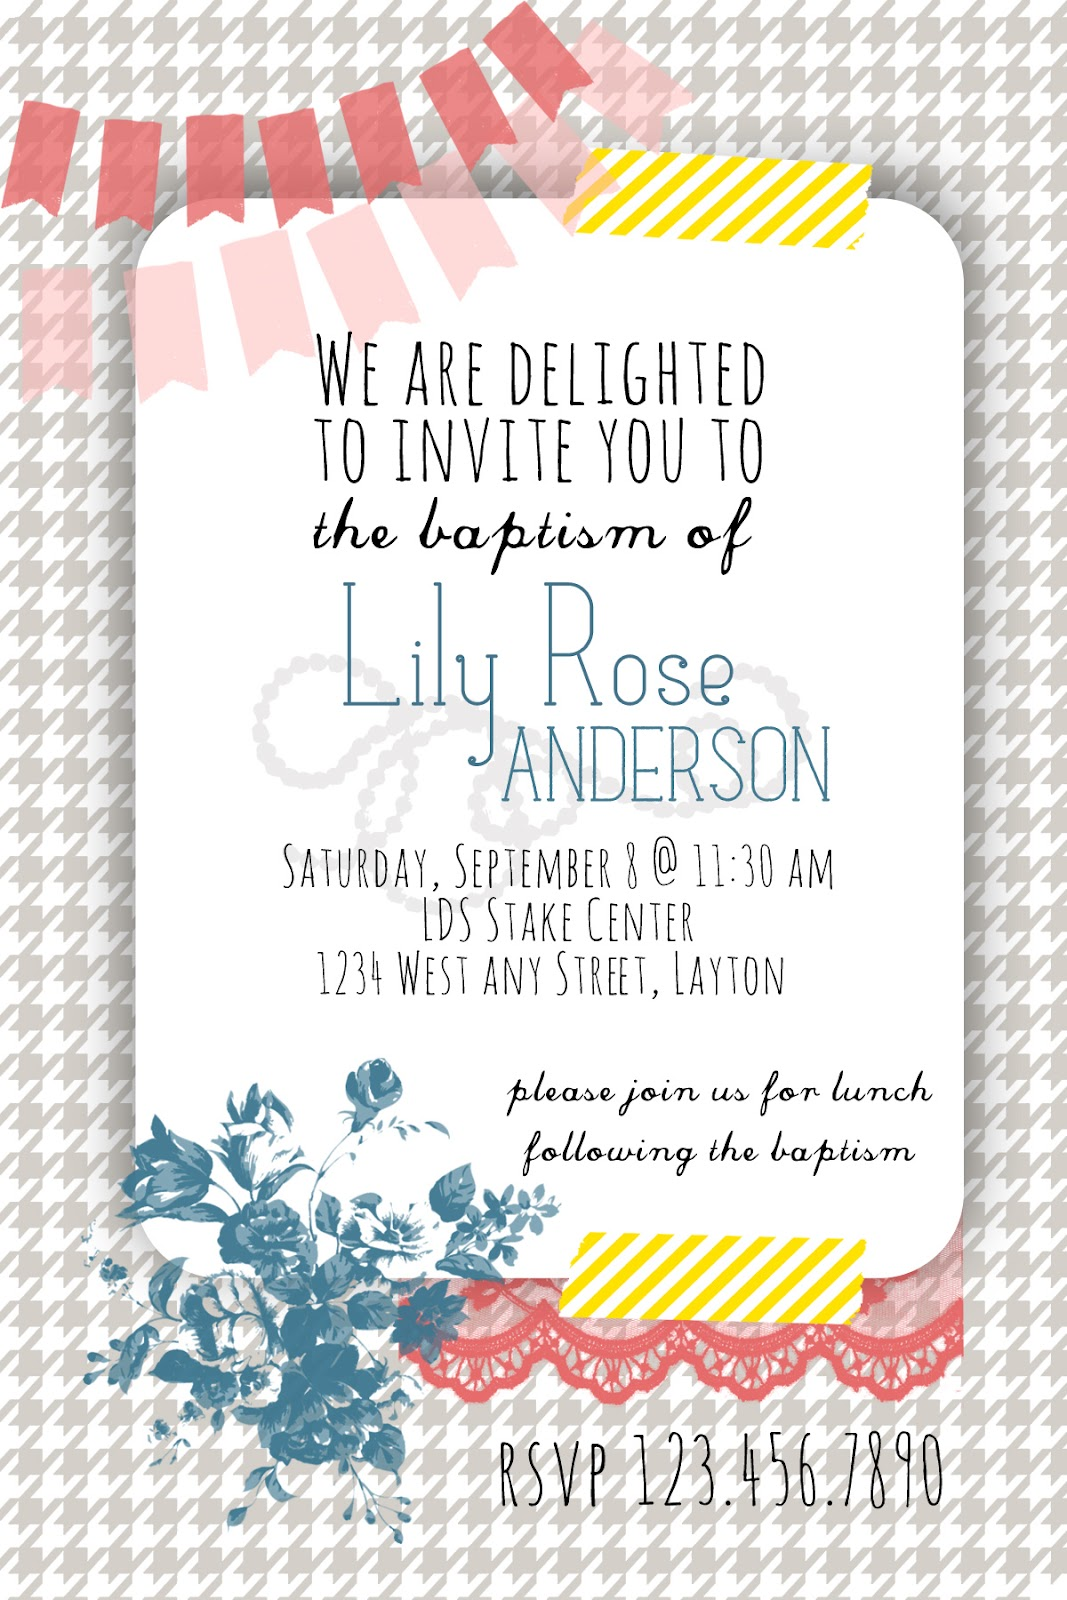 Love Notes By Lauryn: Free Blank Customizable Invite Printable